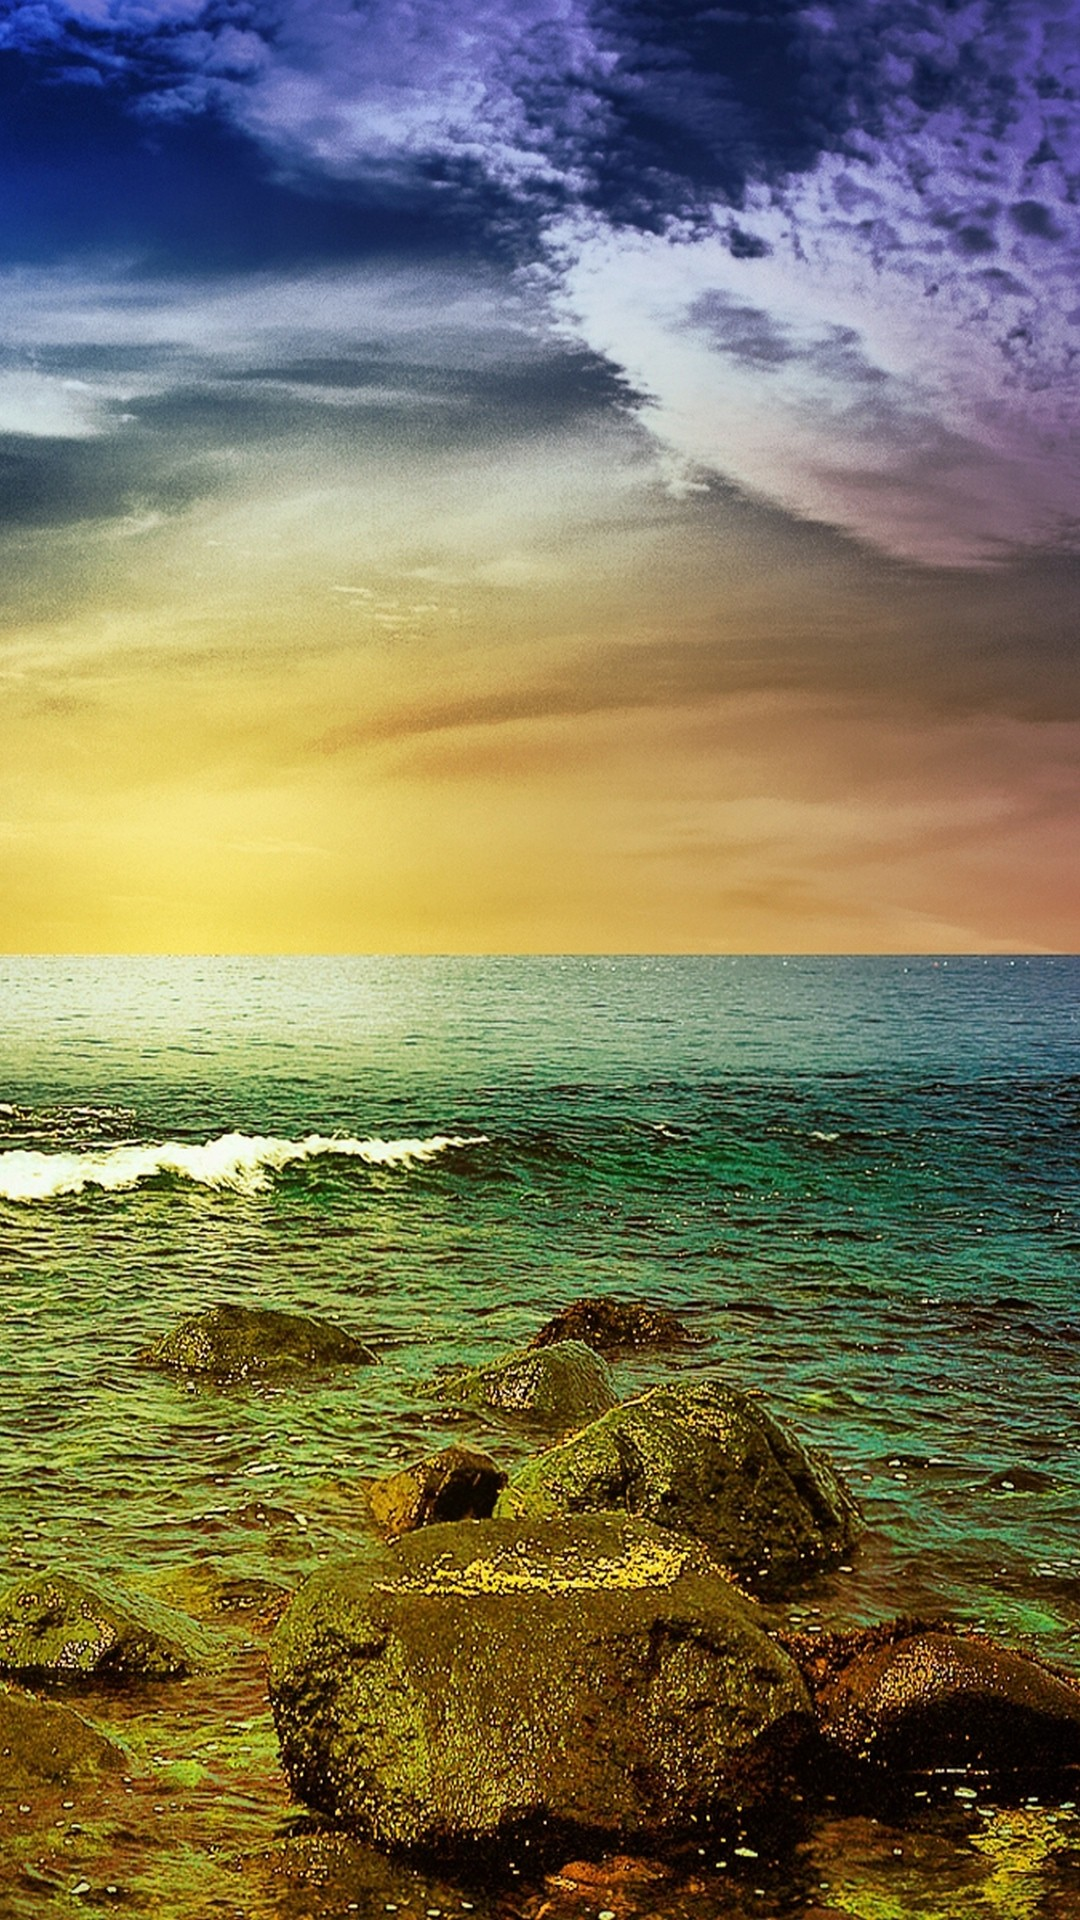 Stormy Sea Rocks Sunset Android Wallpaper …